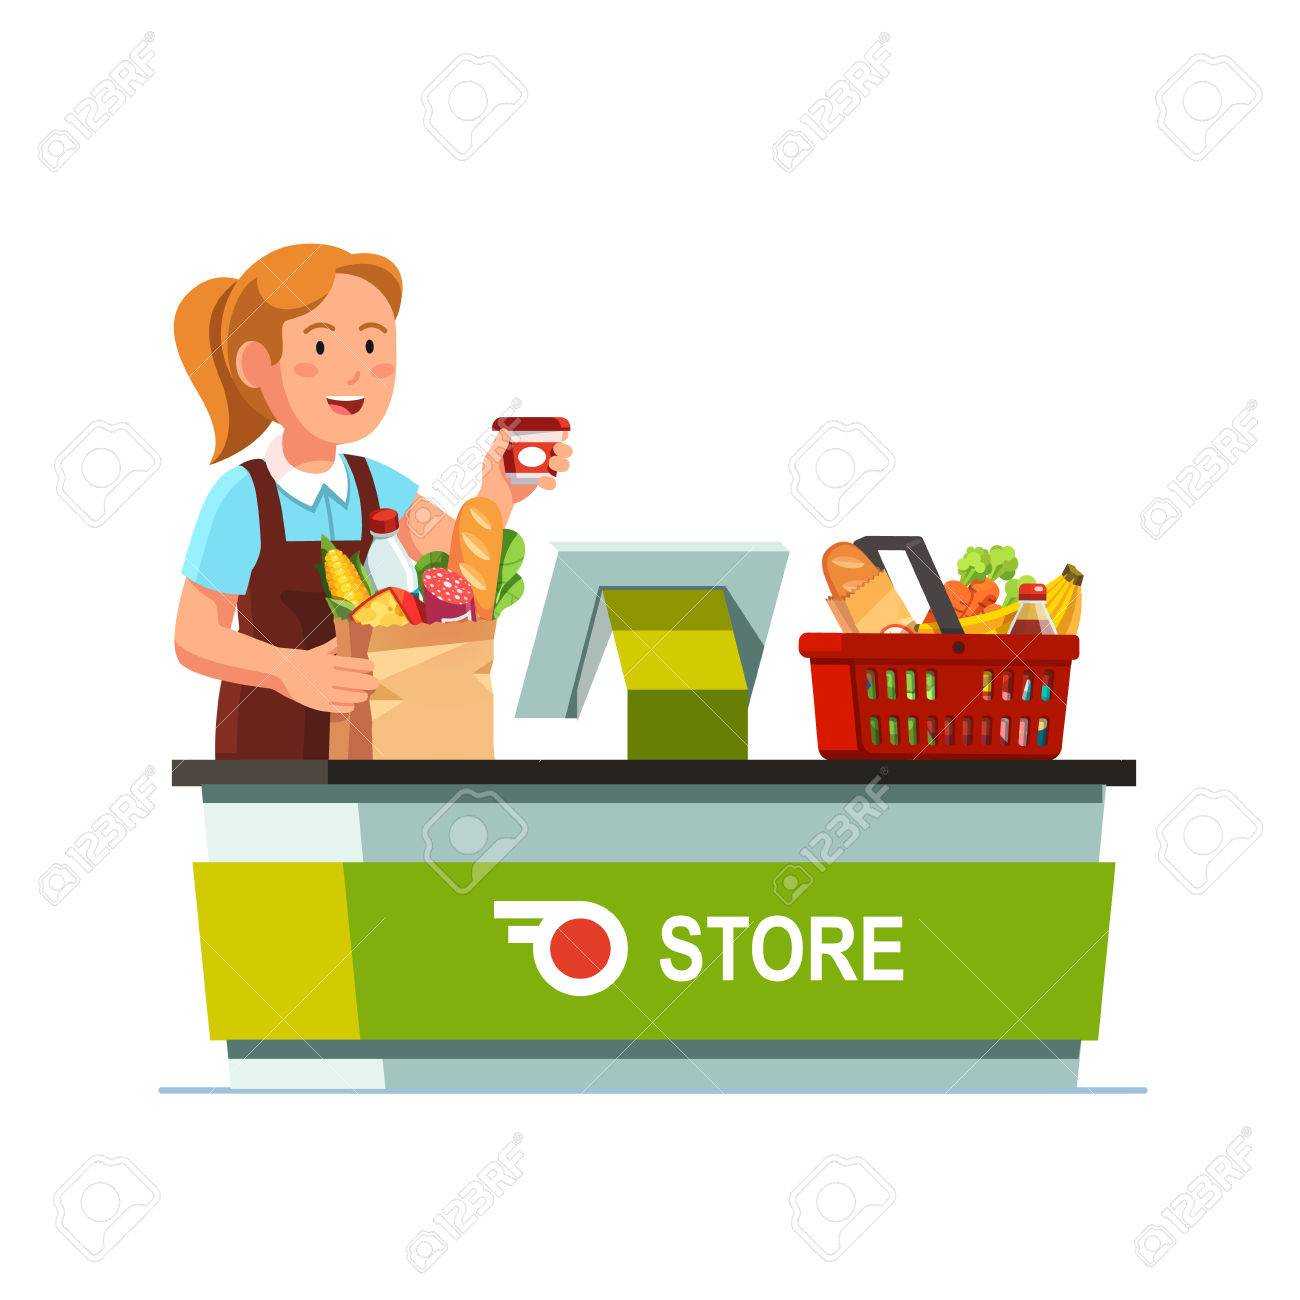 Grocery store worker clipart